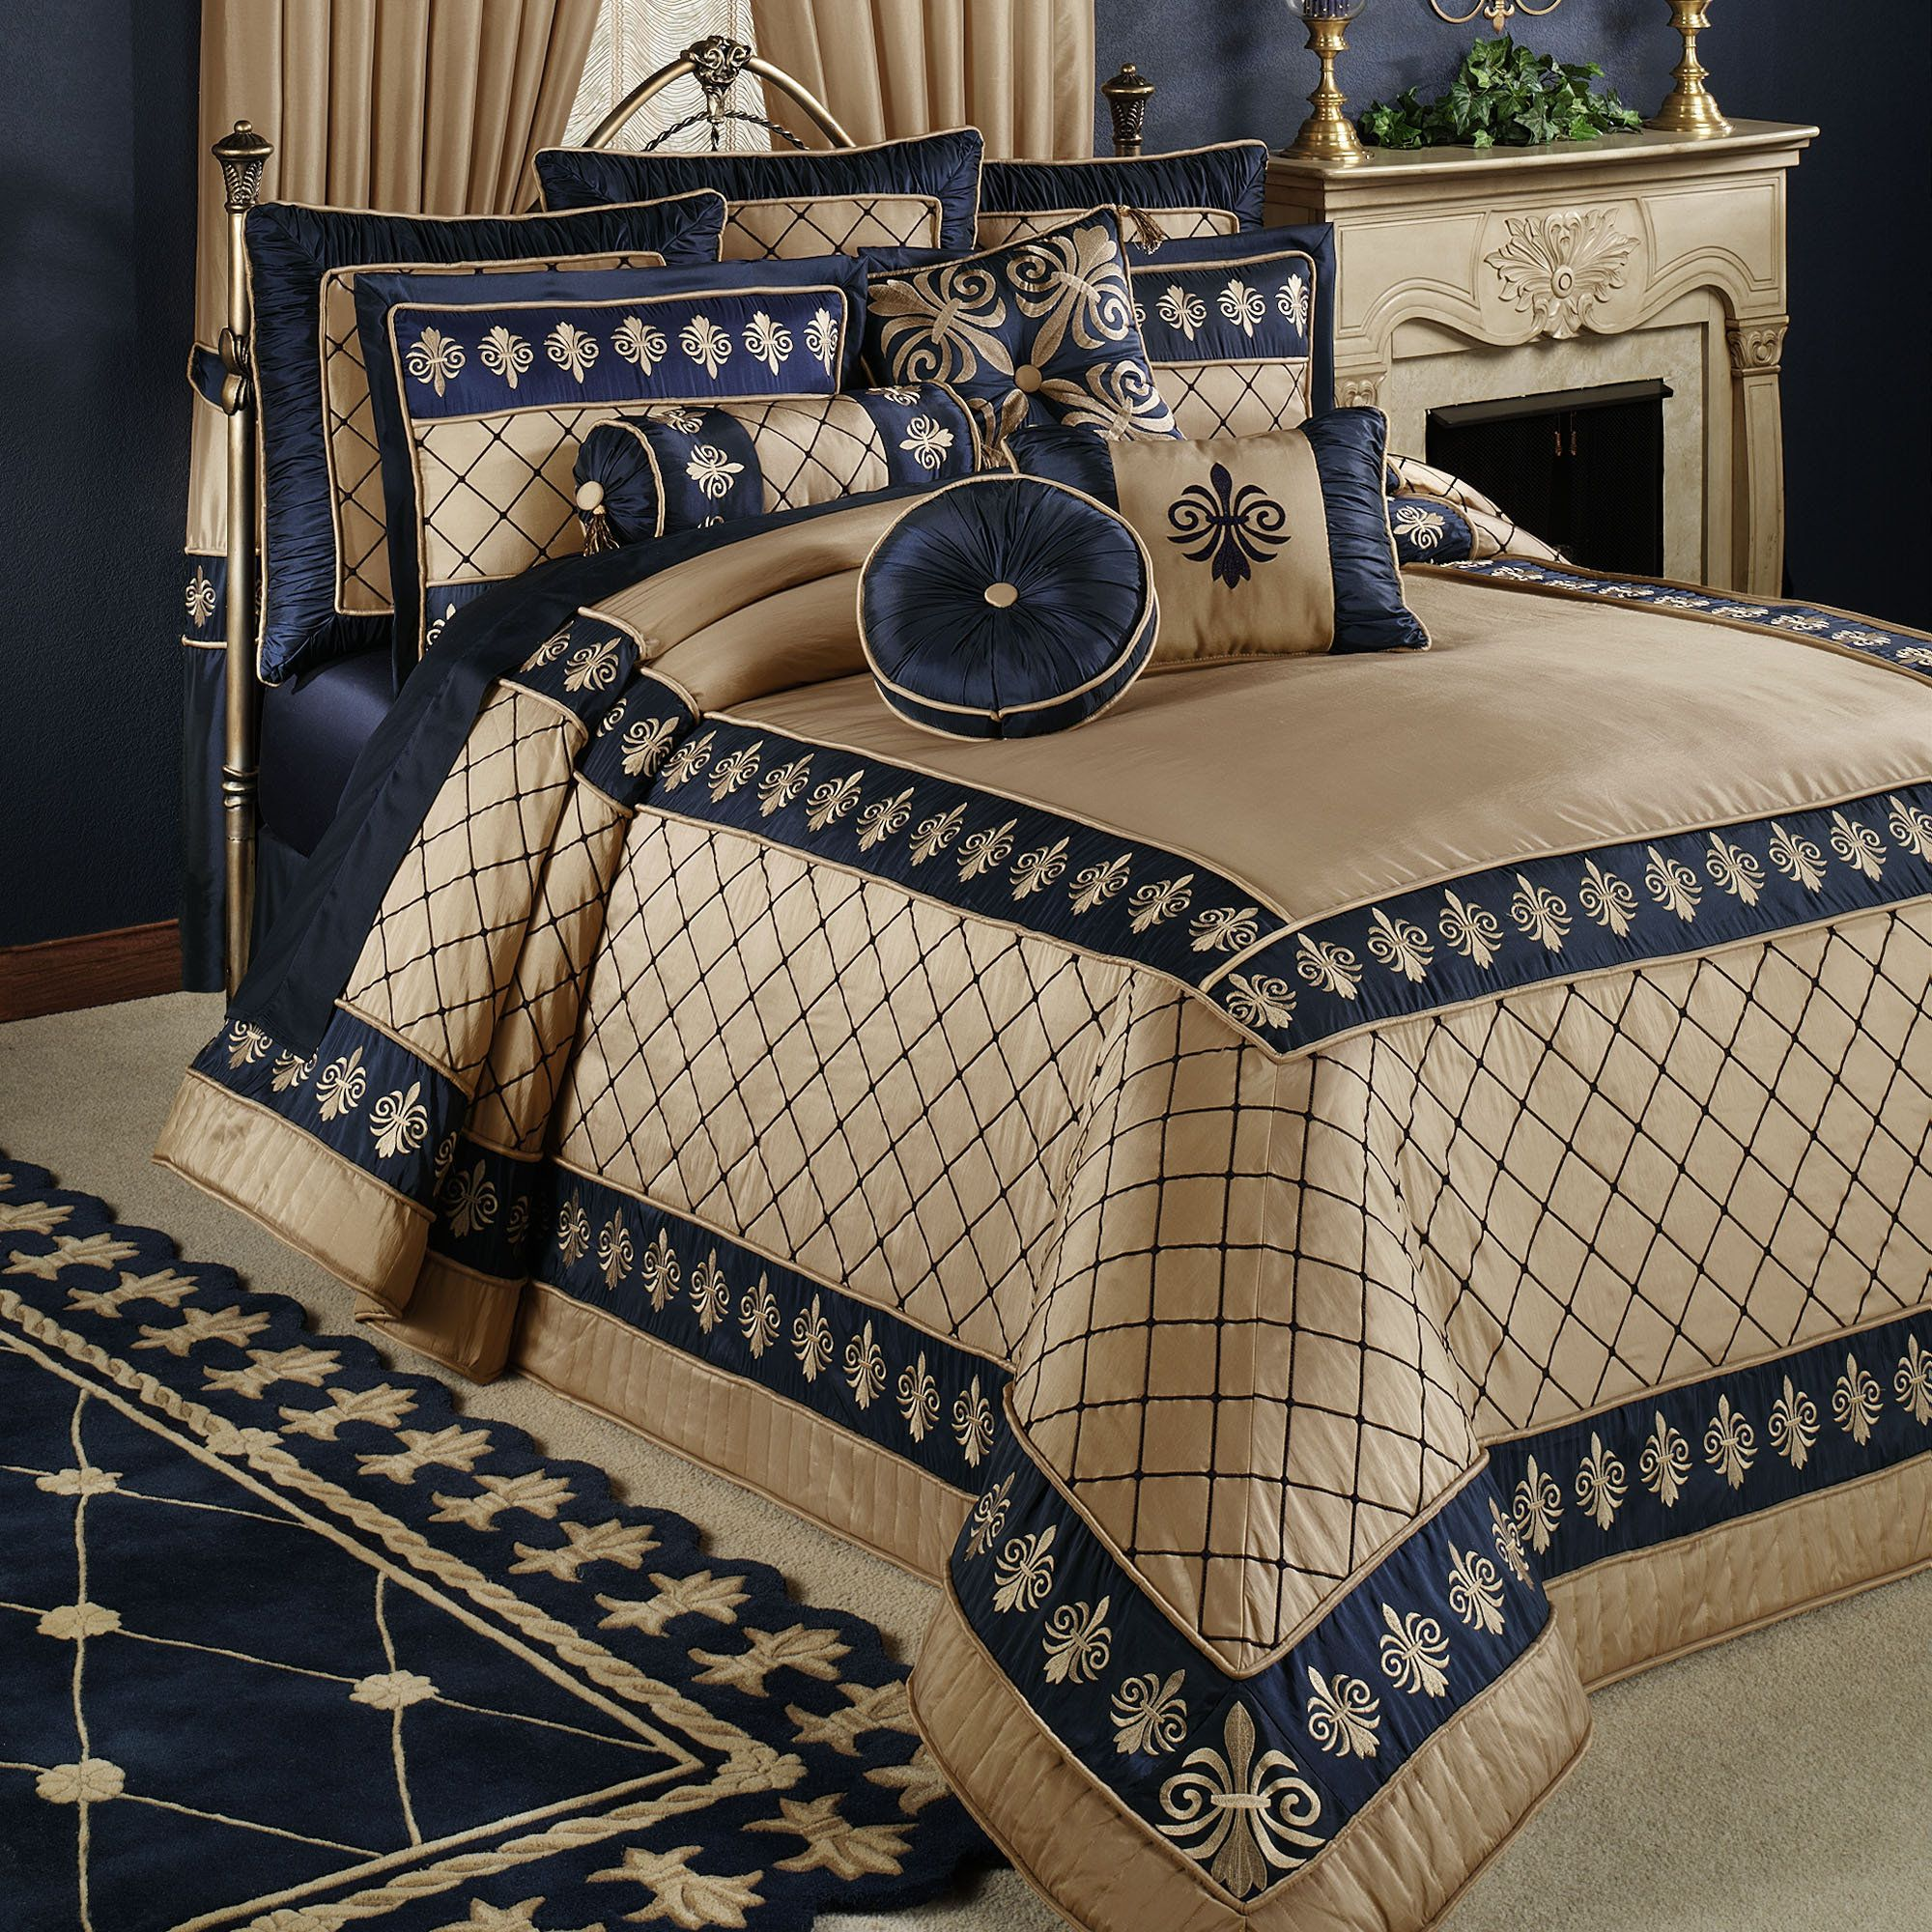 Regal Empire Grande Bedspread Bedspread Pinterest